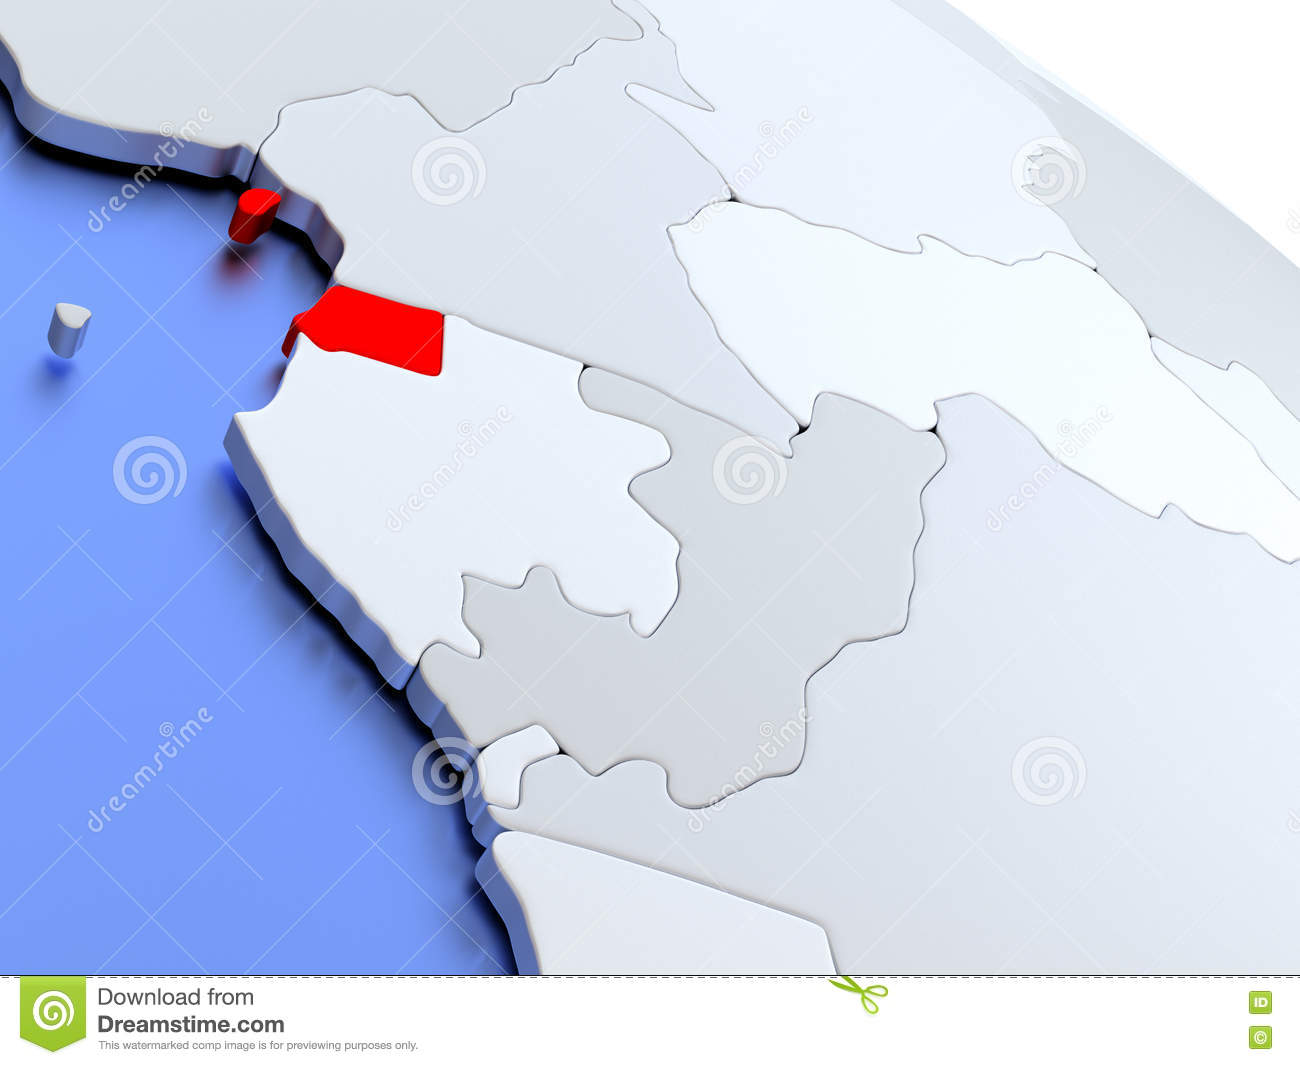 Equatorial Guinea On World Map Stock Illustration - Illustration of ...